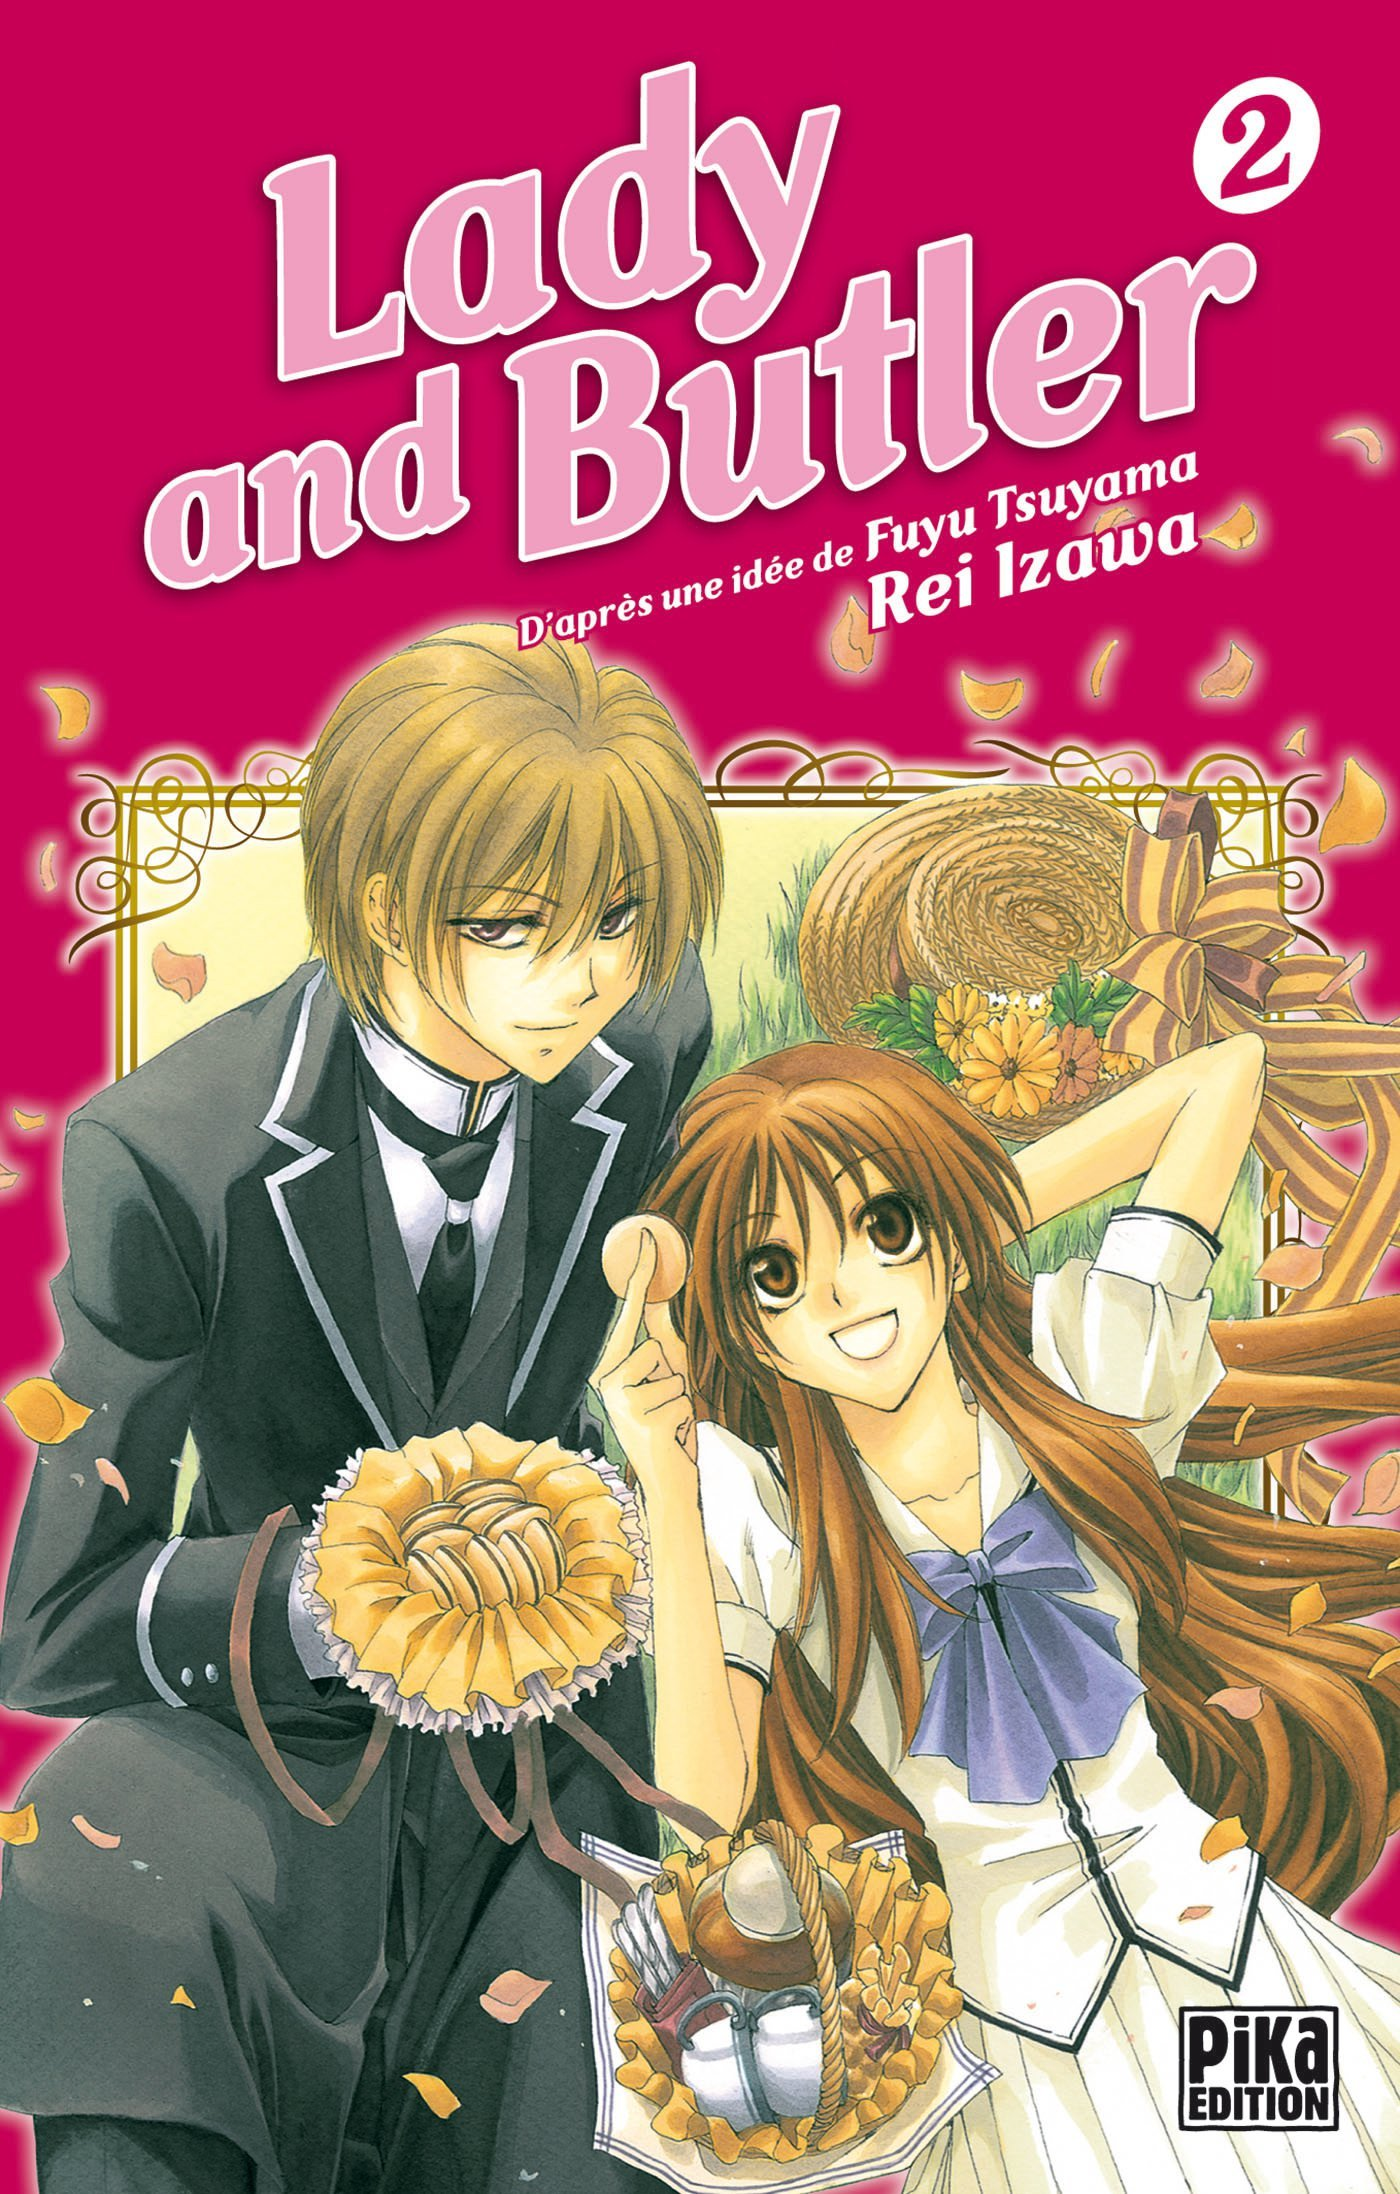 Lady and Butler Vol.2